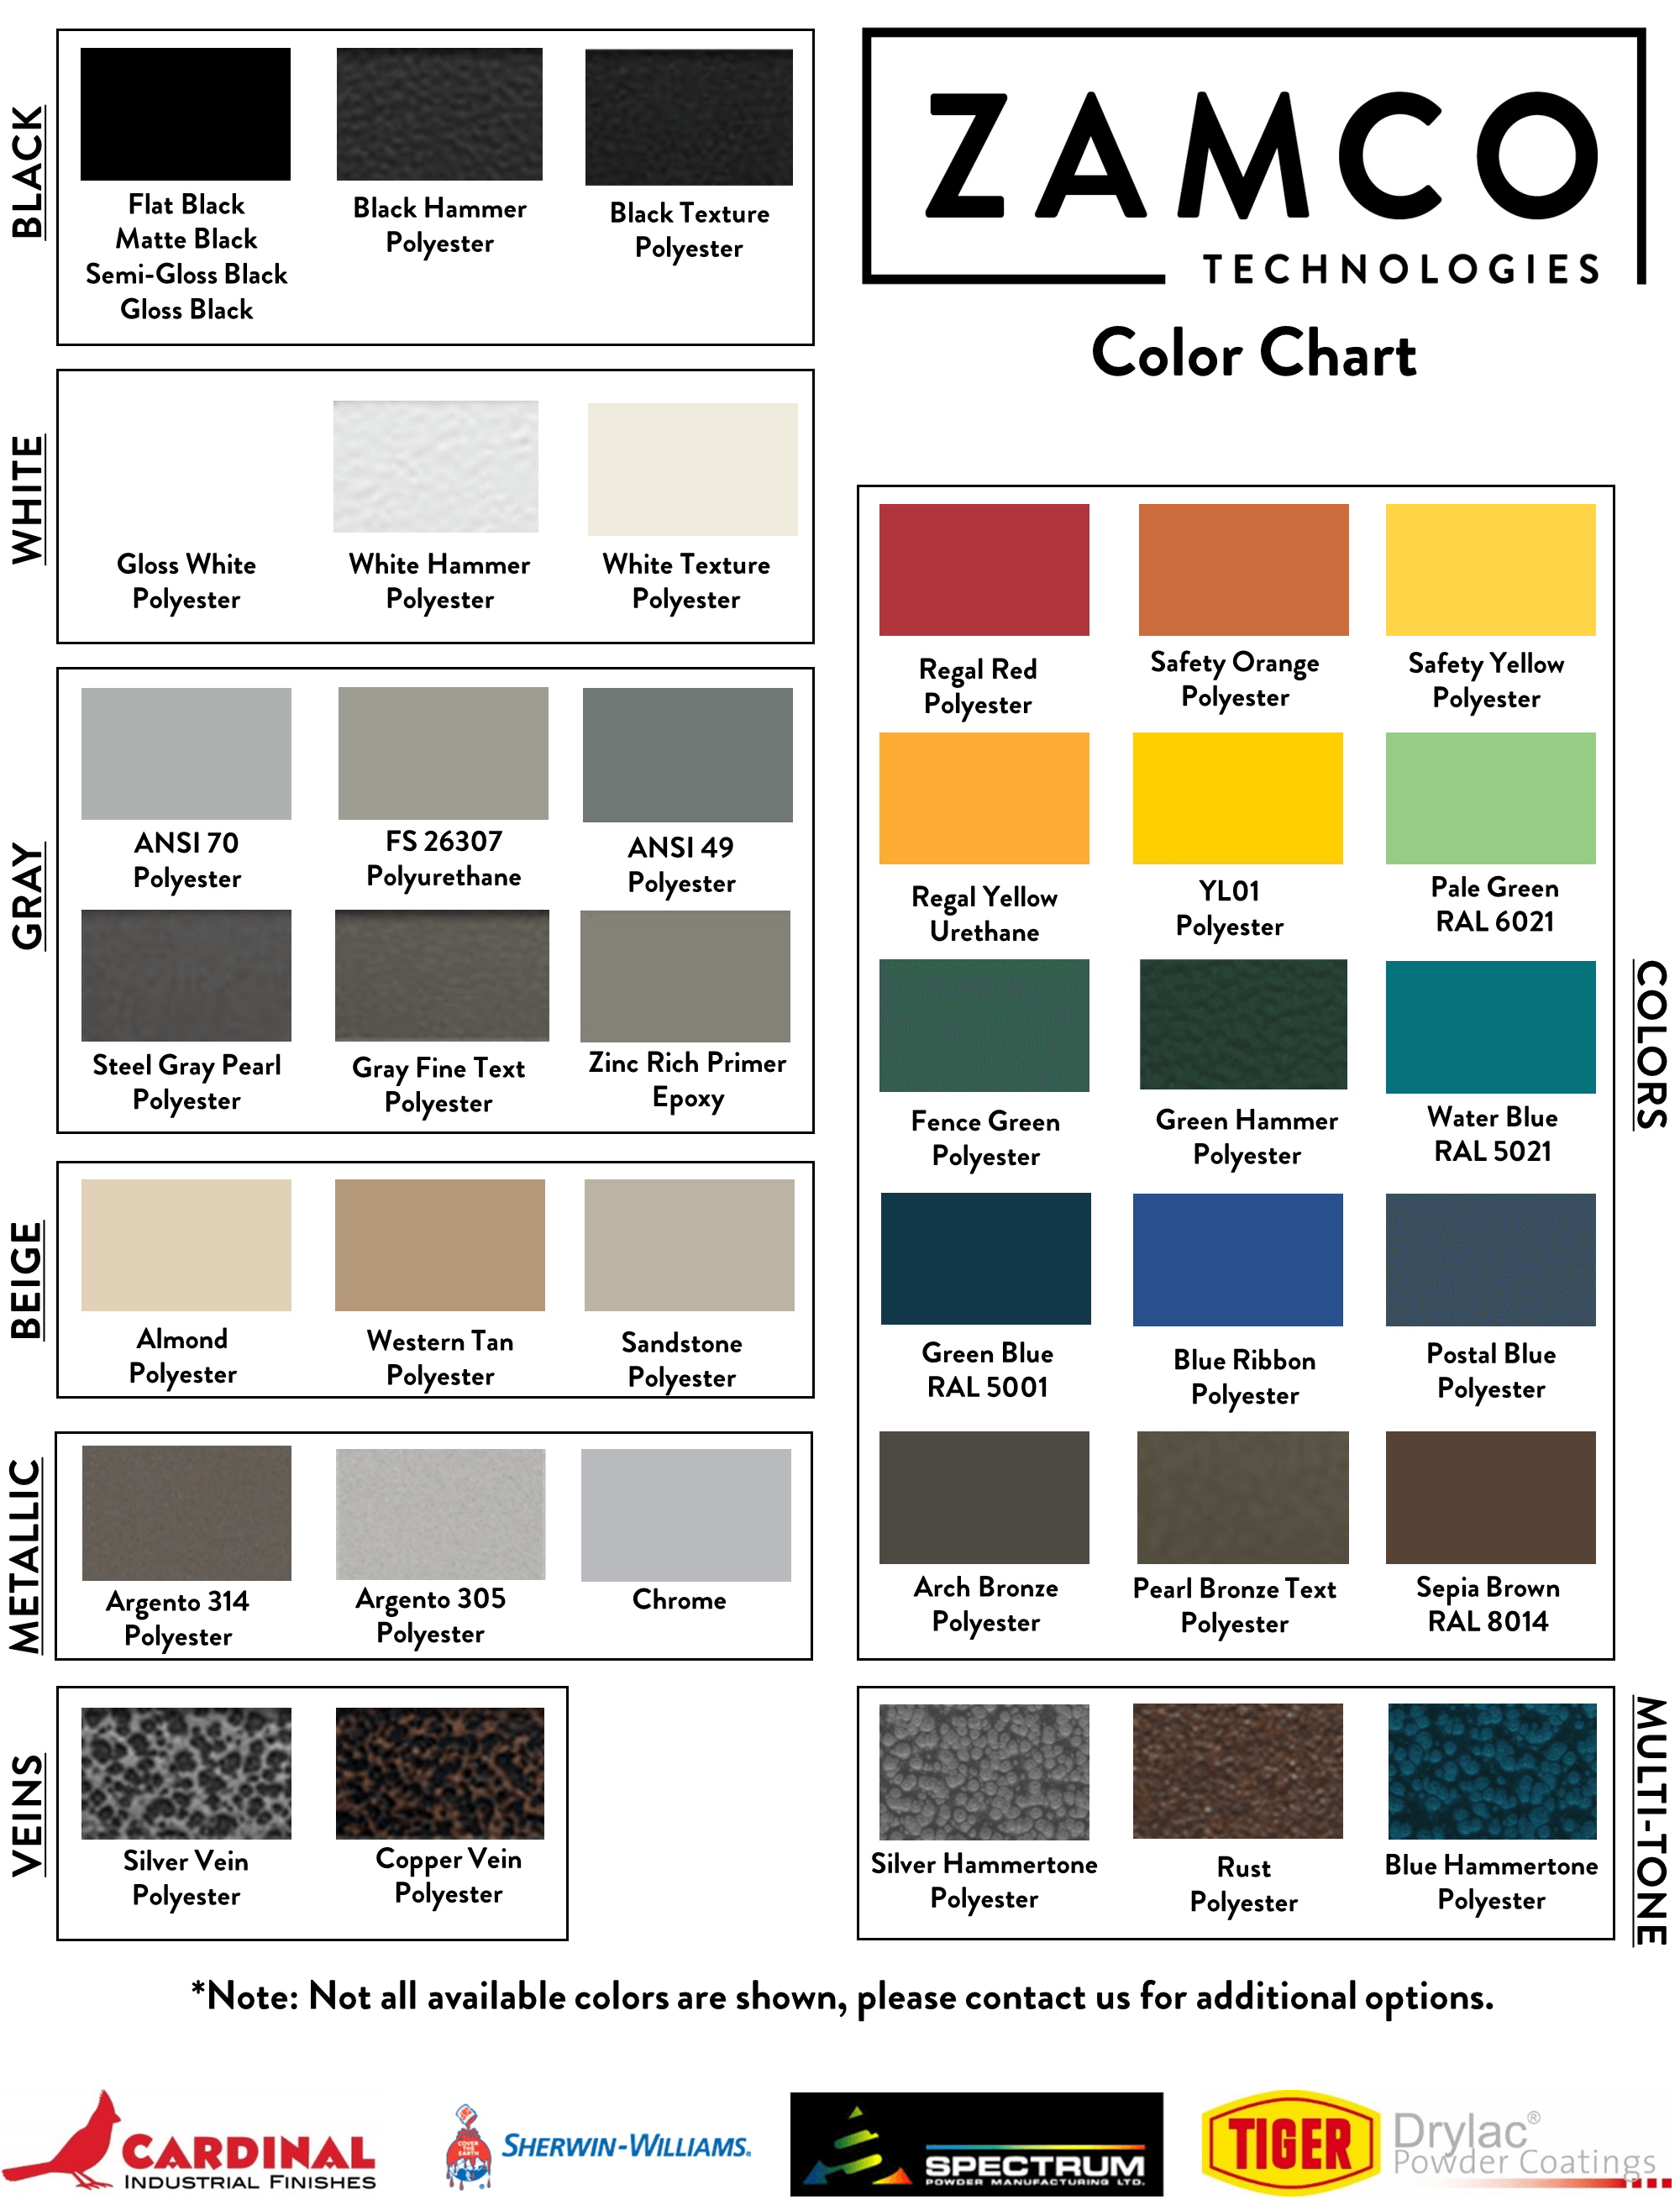 Zamco technologies powder coating colors geenschuldenfo Image collections